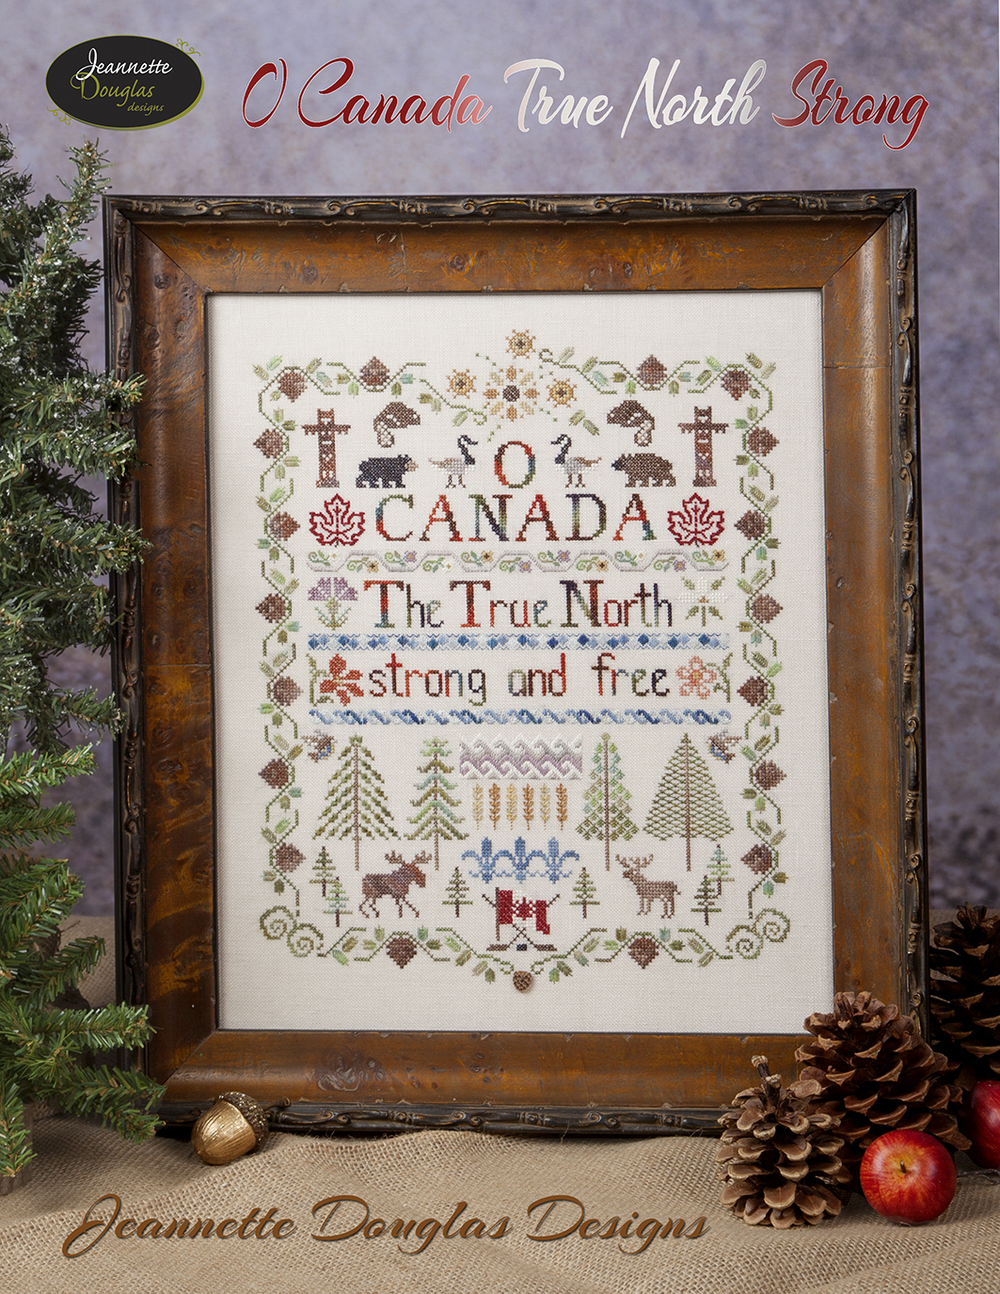 O Canada True North Strong